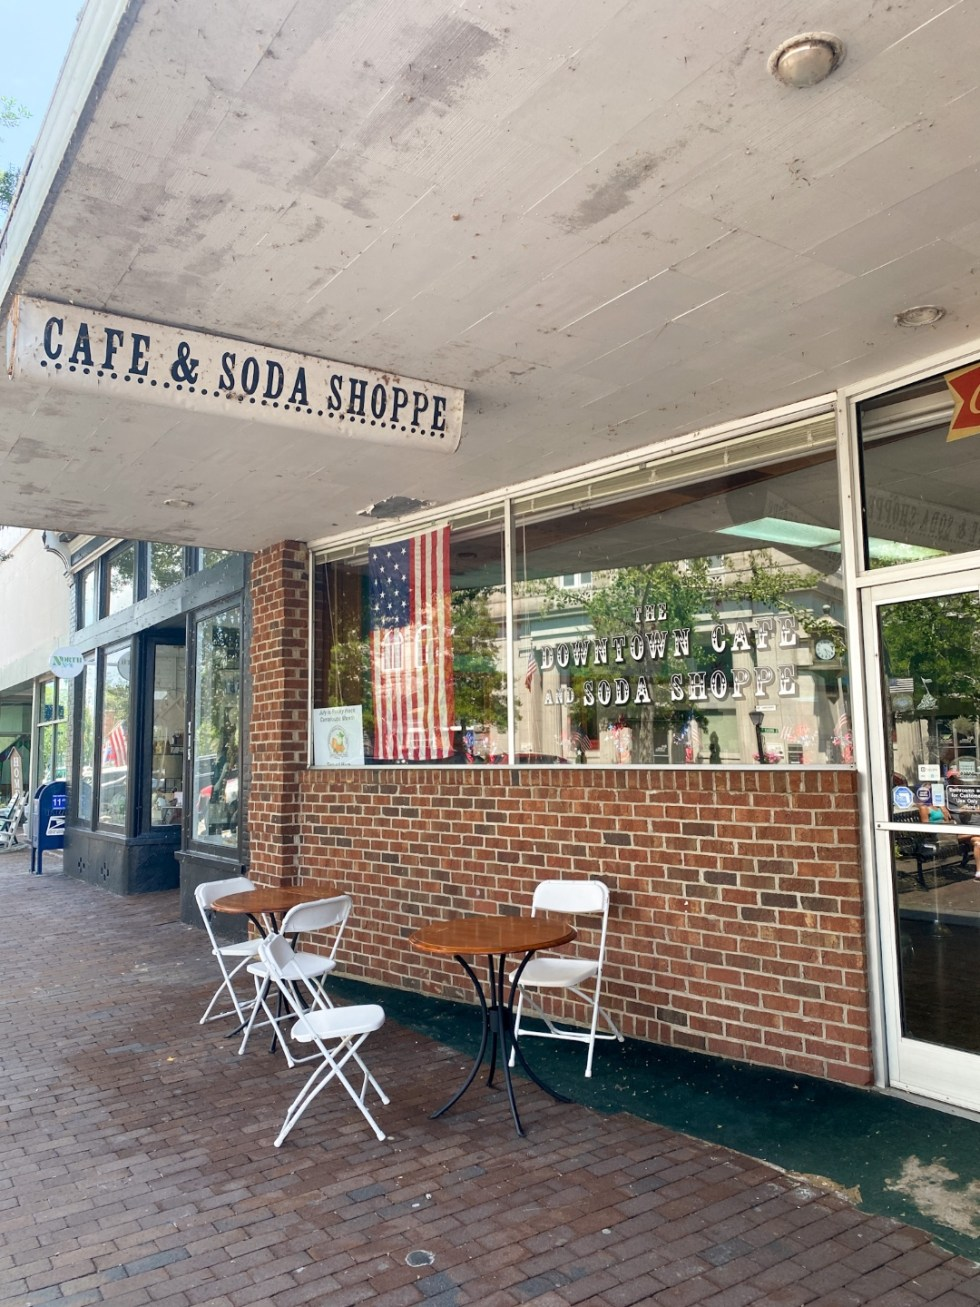 Top 10 Best Things to Do in Edenton, NC: A Complete Travel Guide - I'm Fixin' To - @imfixintoblog | Edenton Travel Guide by popular NC travel guid, I'm Fixin' To: image of The Downtown Cafe and Soda Shoppe.